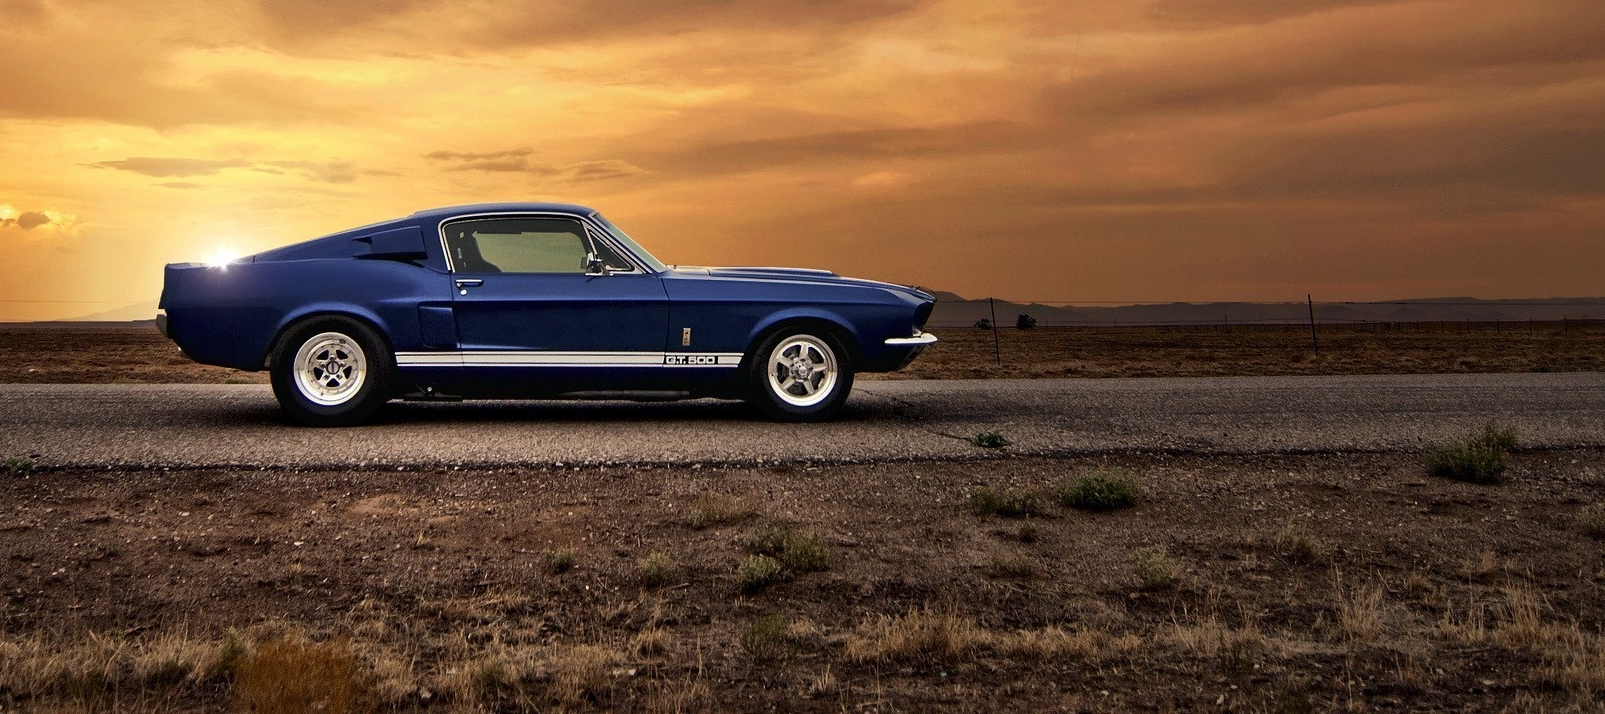 10 Best Muscle Cars of All Time - Alux.com